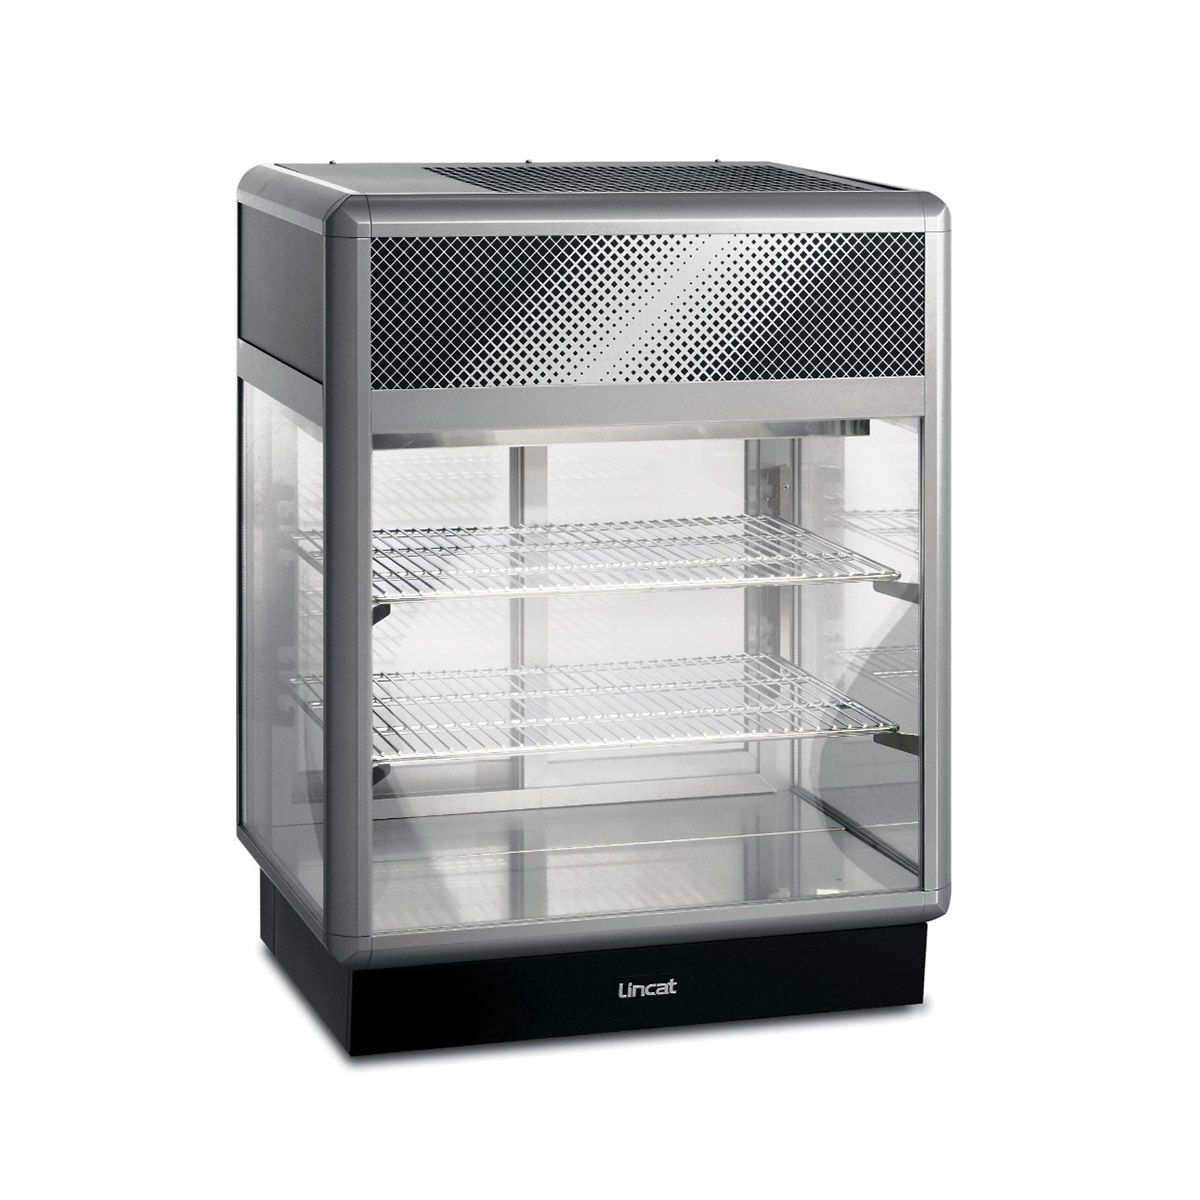 D6R/75B - Lincat Seal 650 Series Counter-top Rectangular Front Refrigerated Merchandiser - Back-Service - W 750 mm - 0.6 kW